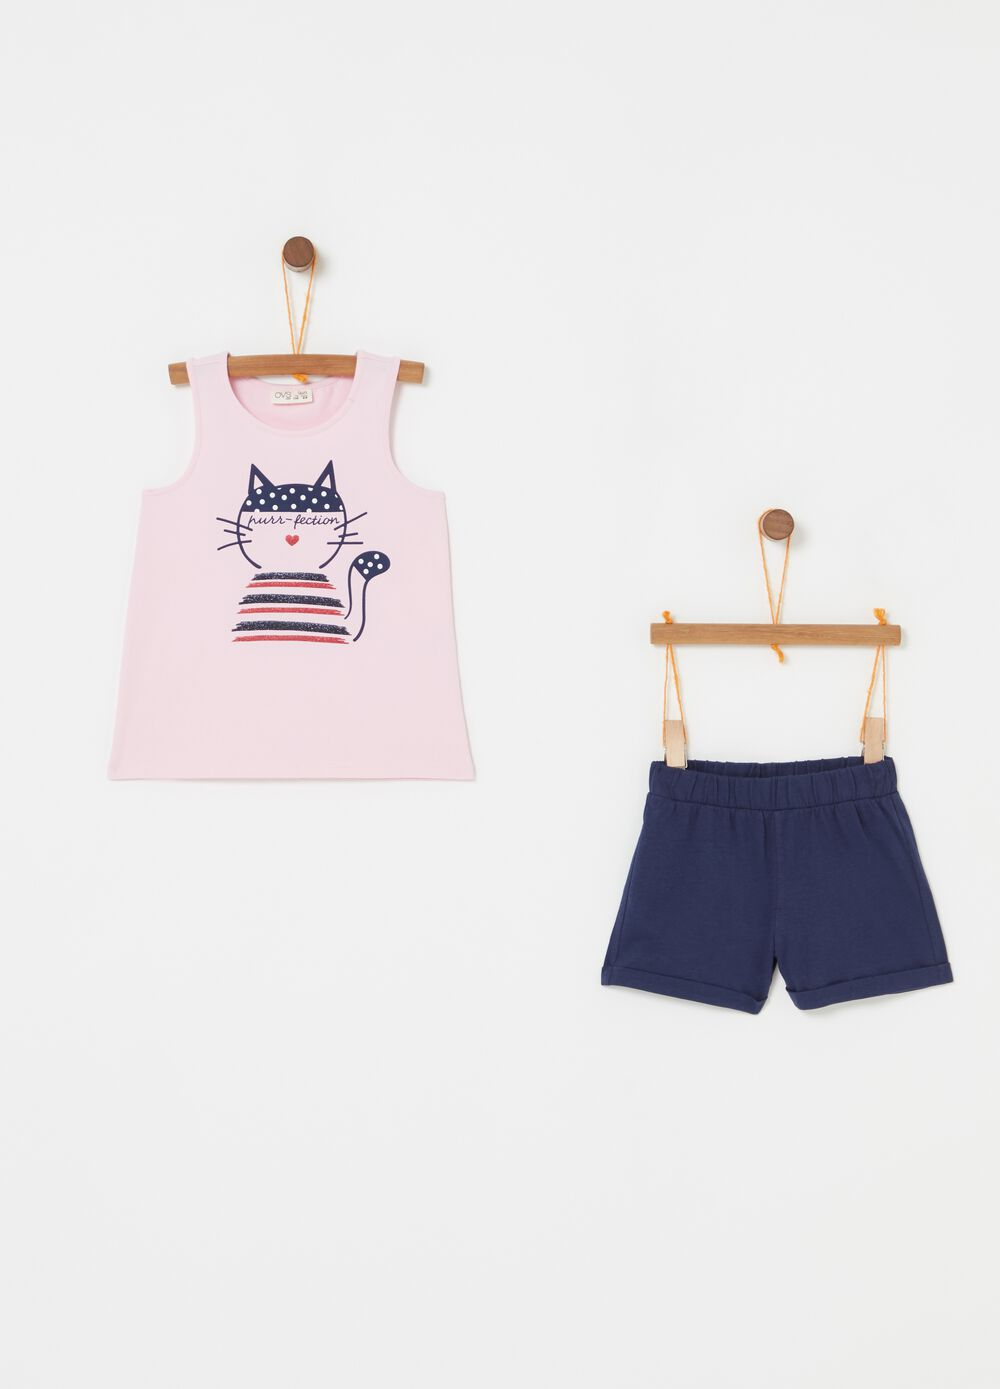 Top and shorts outfit with kitten print